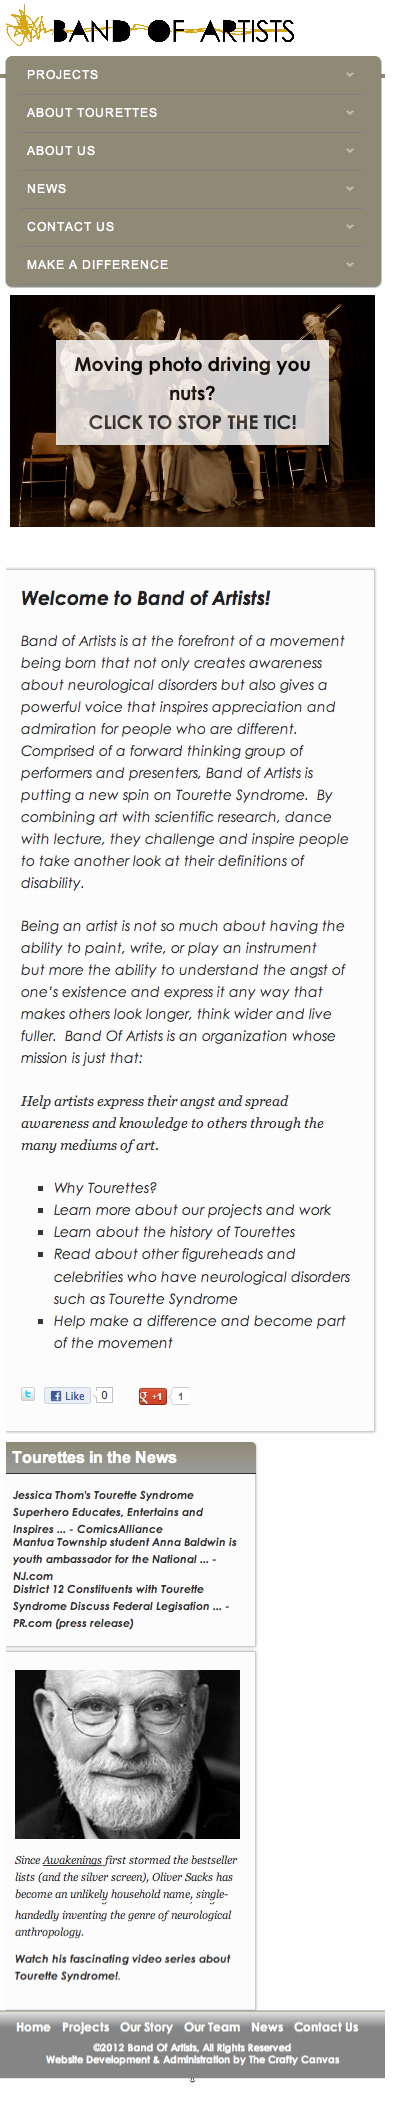 BandOfArtists.org Responsive Design: Mobile Friendly Layout